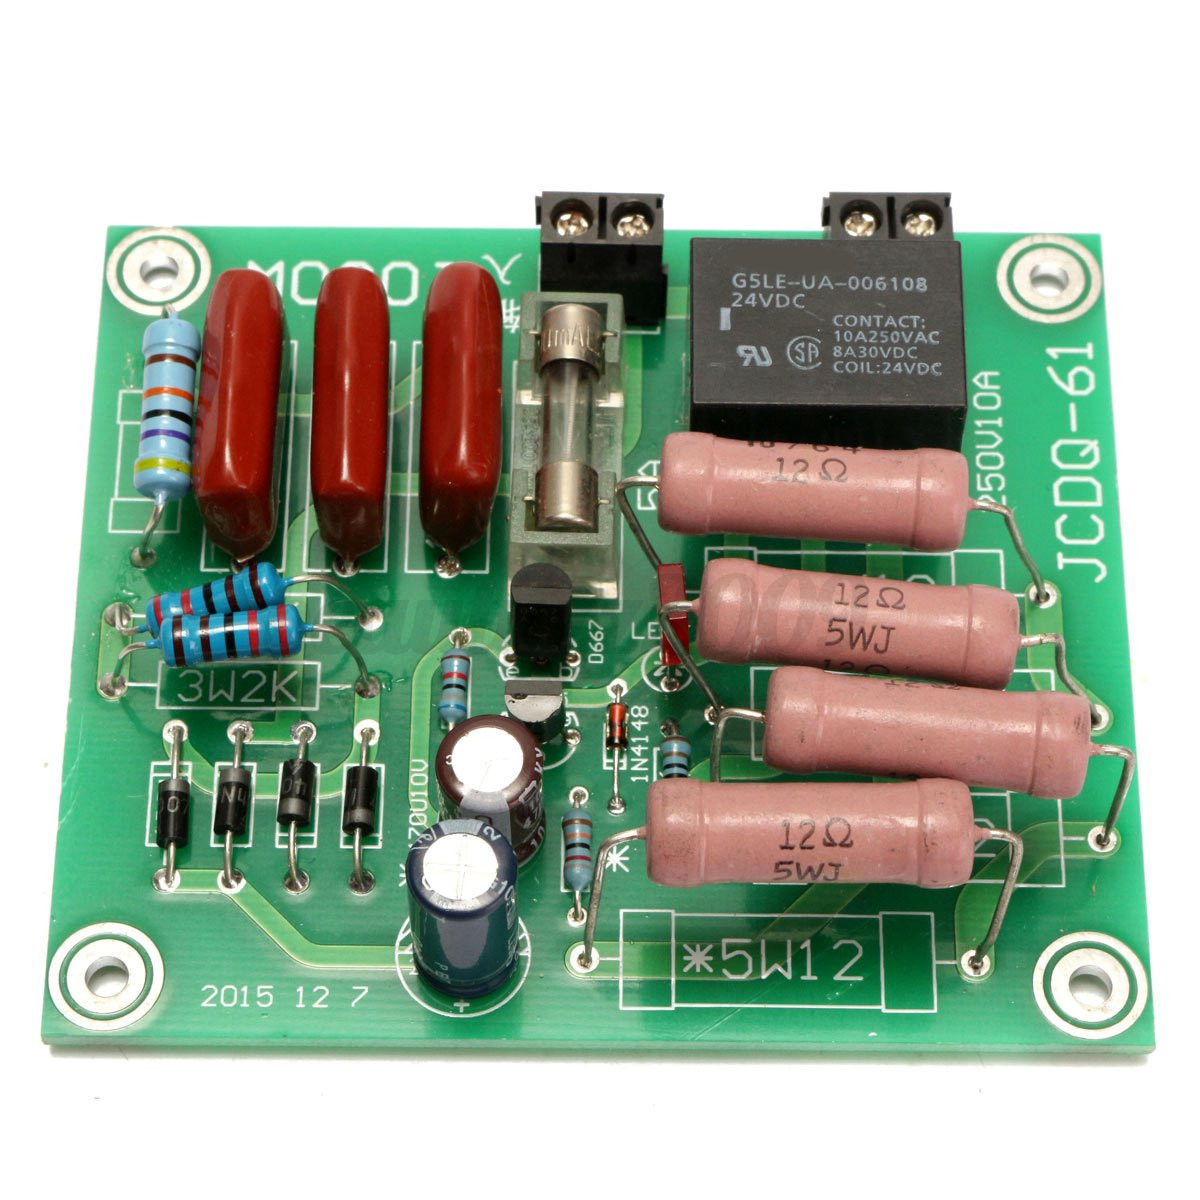 Soft Start Dual Switch And More Time Delay Circuit Related Keywords Suggestions Http Ebaycomau Itm 1000w 220v Transformer Amplifier Protection Board Power 131824232899 Trksidp2047675c100011